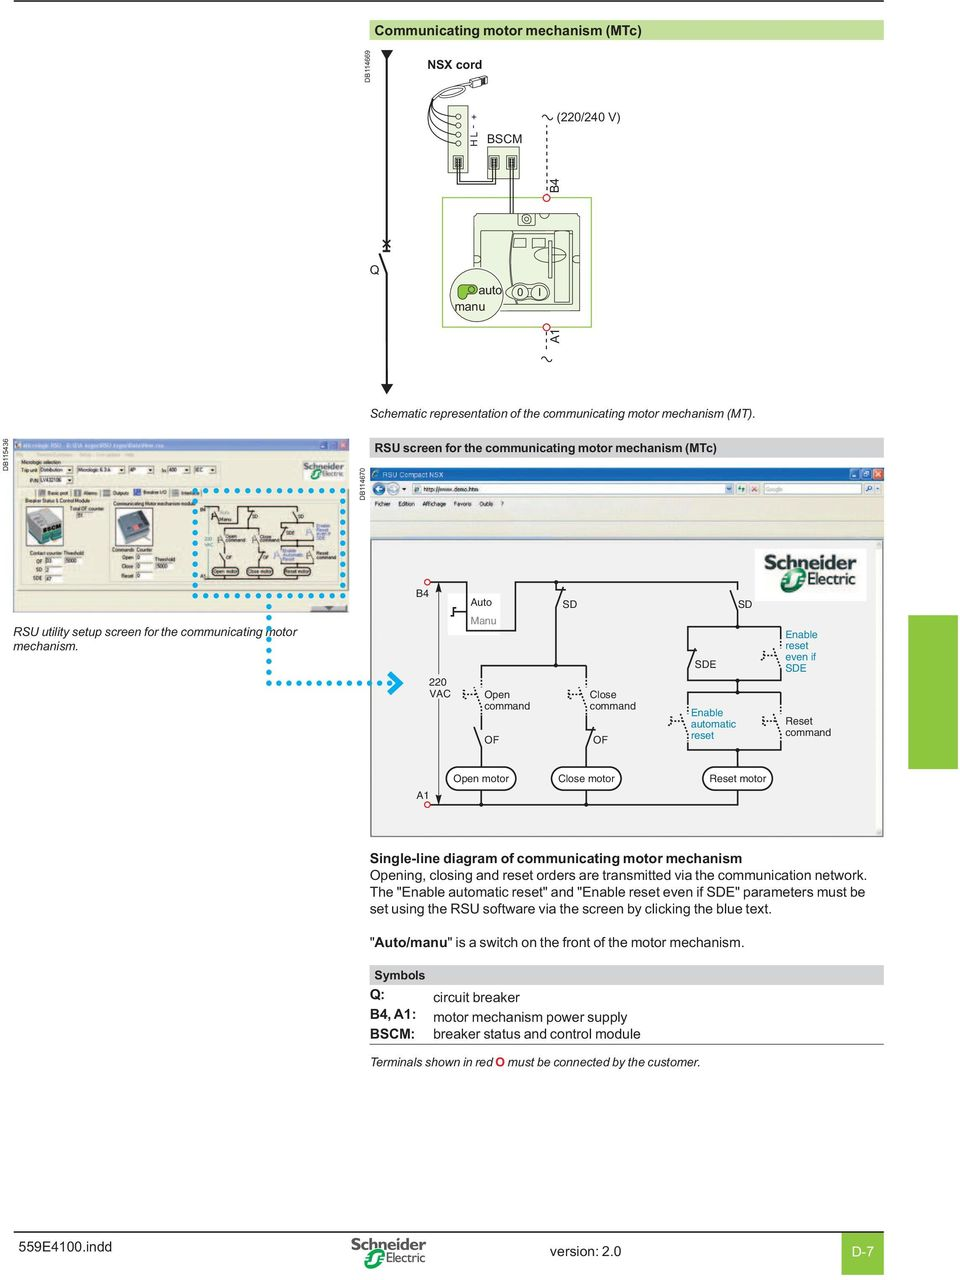 Wiring Diagrams Compact Nsx Contents Pdf 220 Motor Schematic Vac Auto Manu Command Of Sd Close Enable Matic Reset